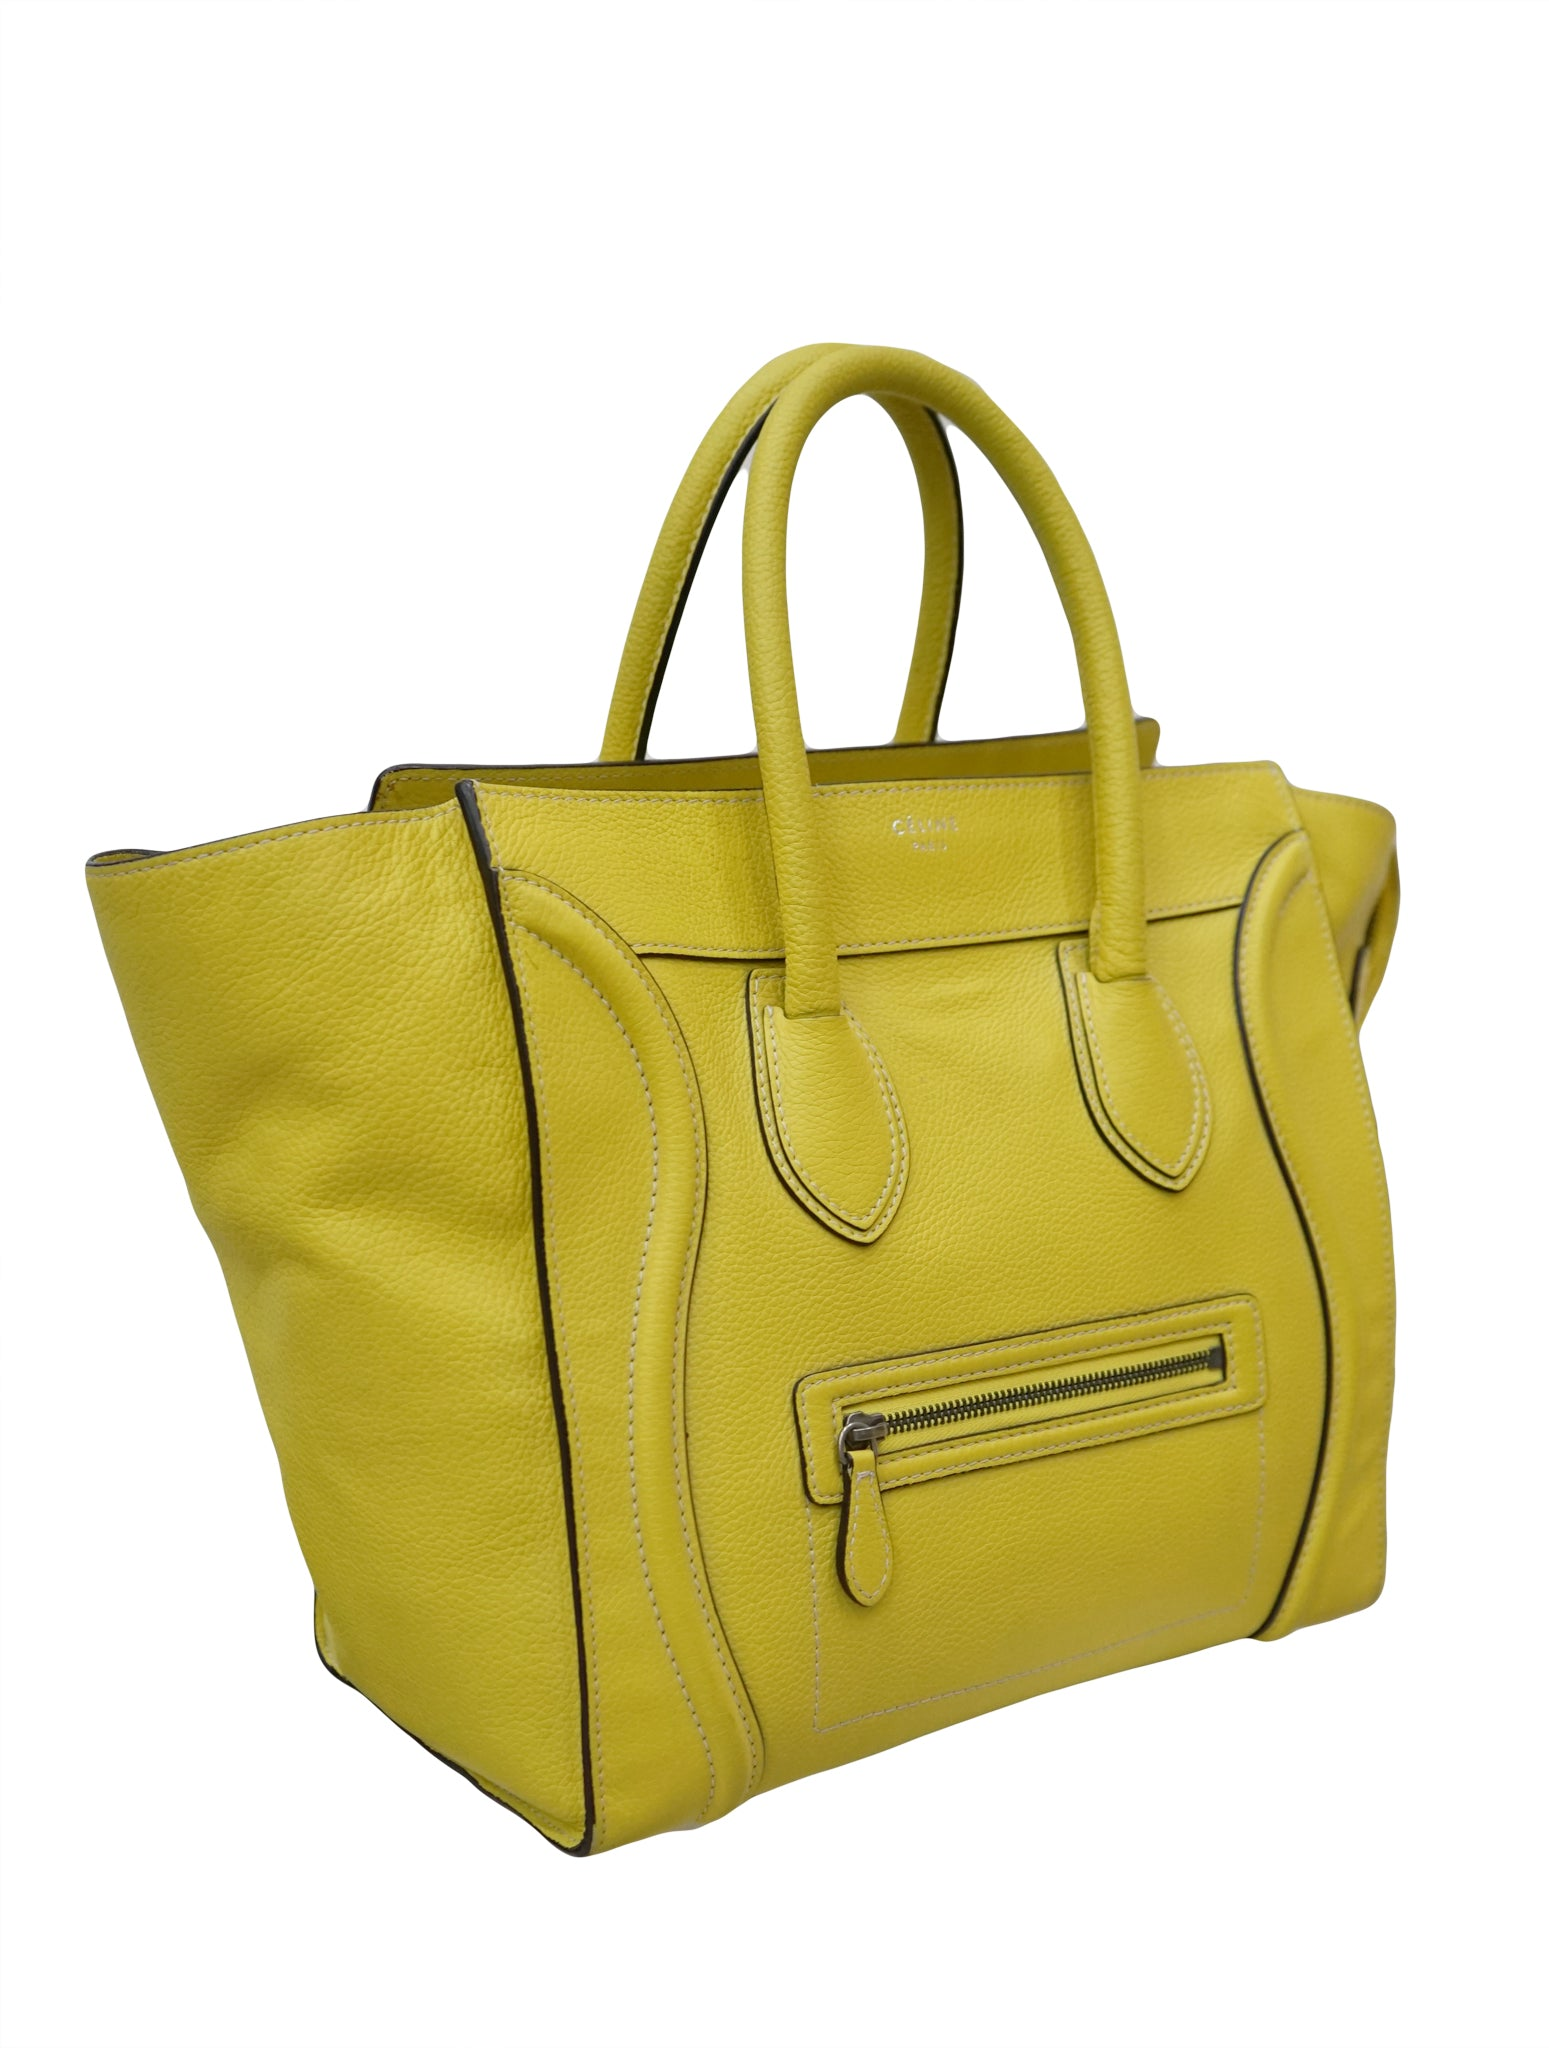 CITRON DRUMMED LEATHER MINI LUGGAGE TOTE